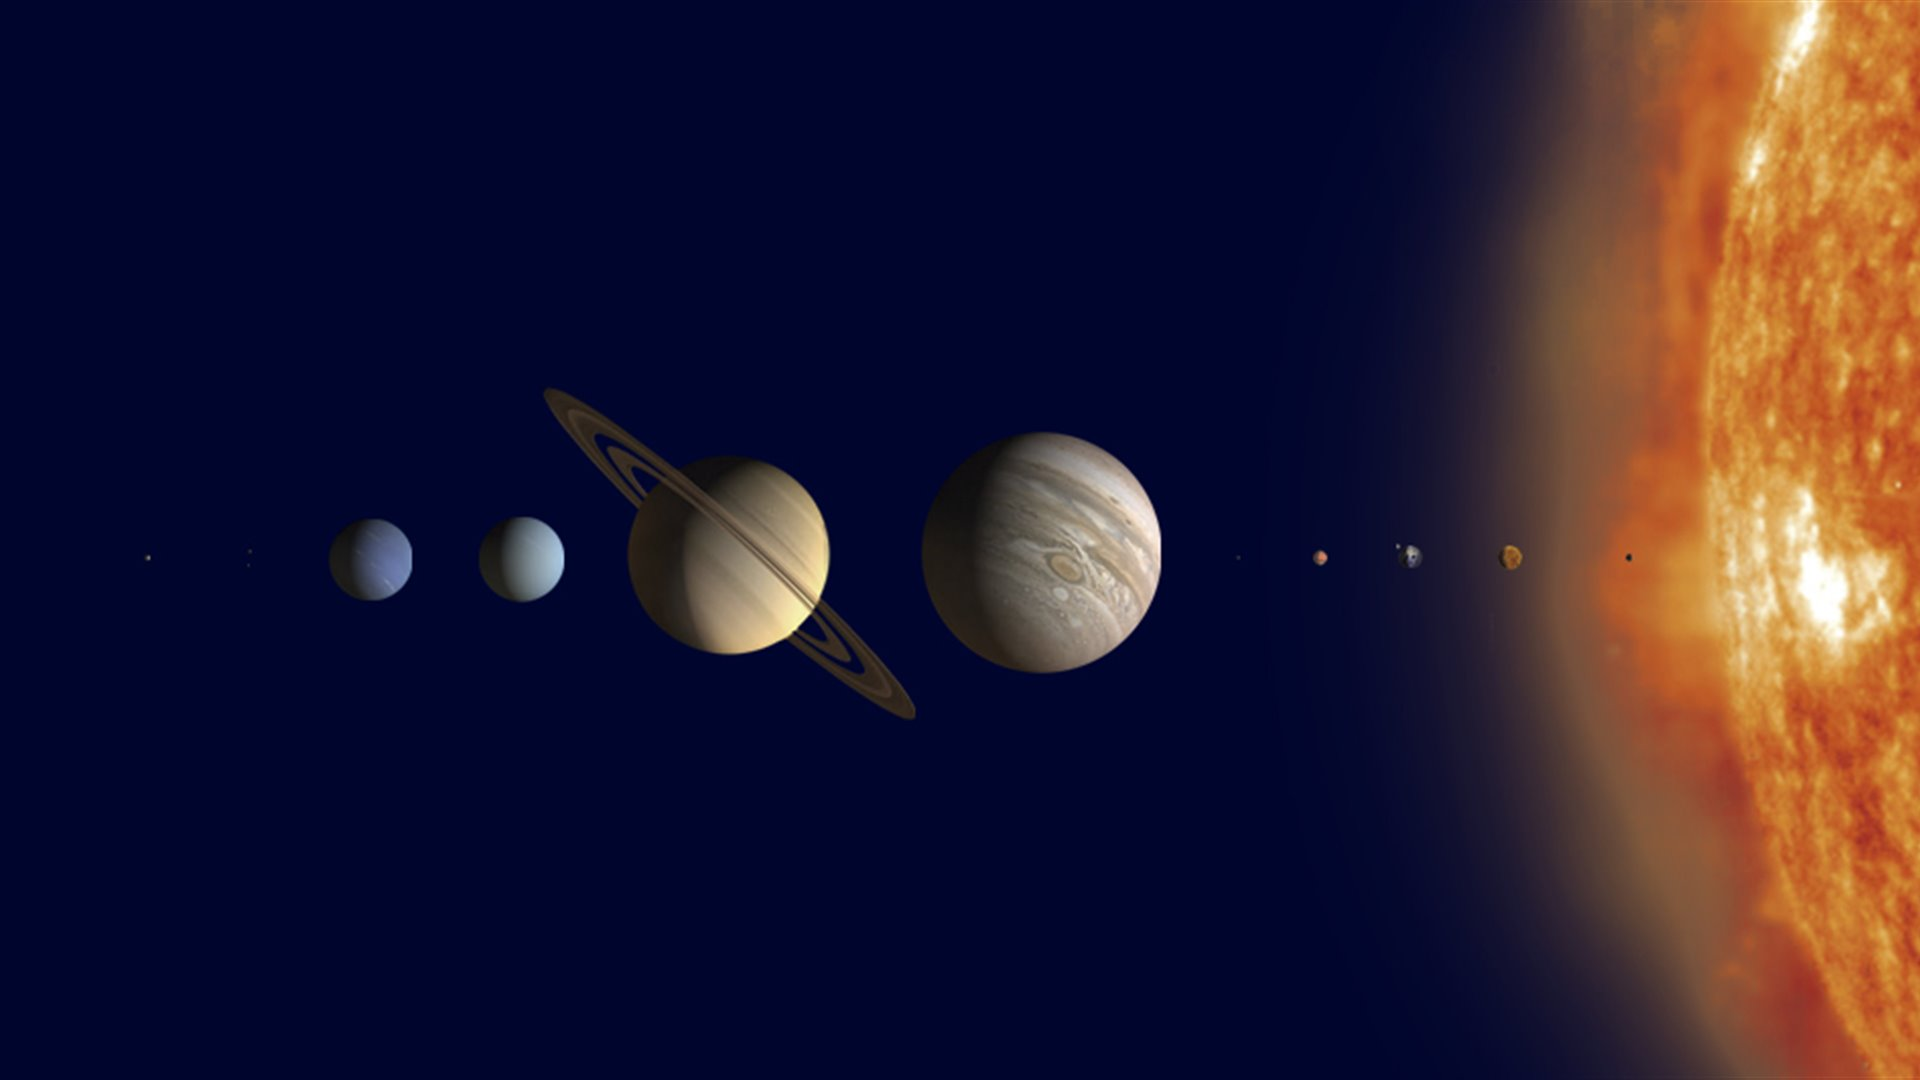 The robotic exploration of the Solar System